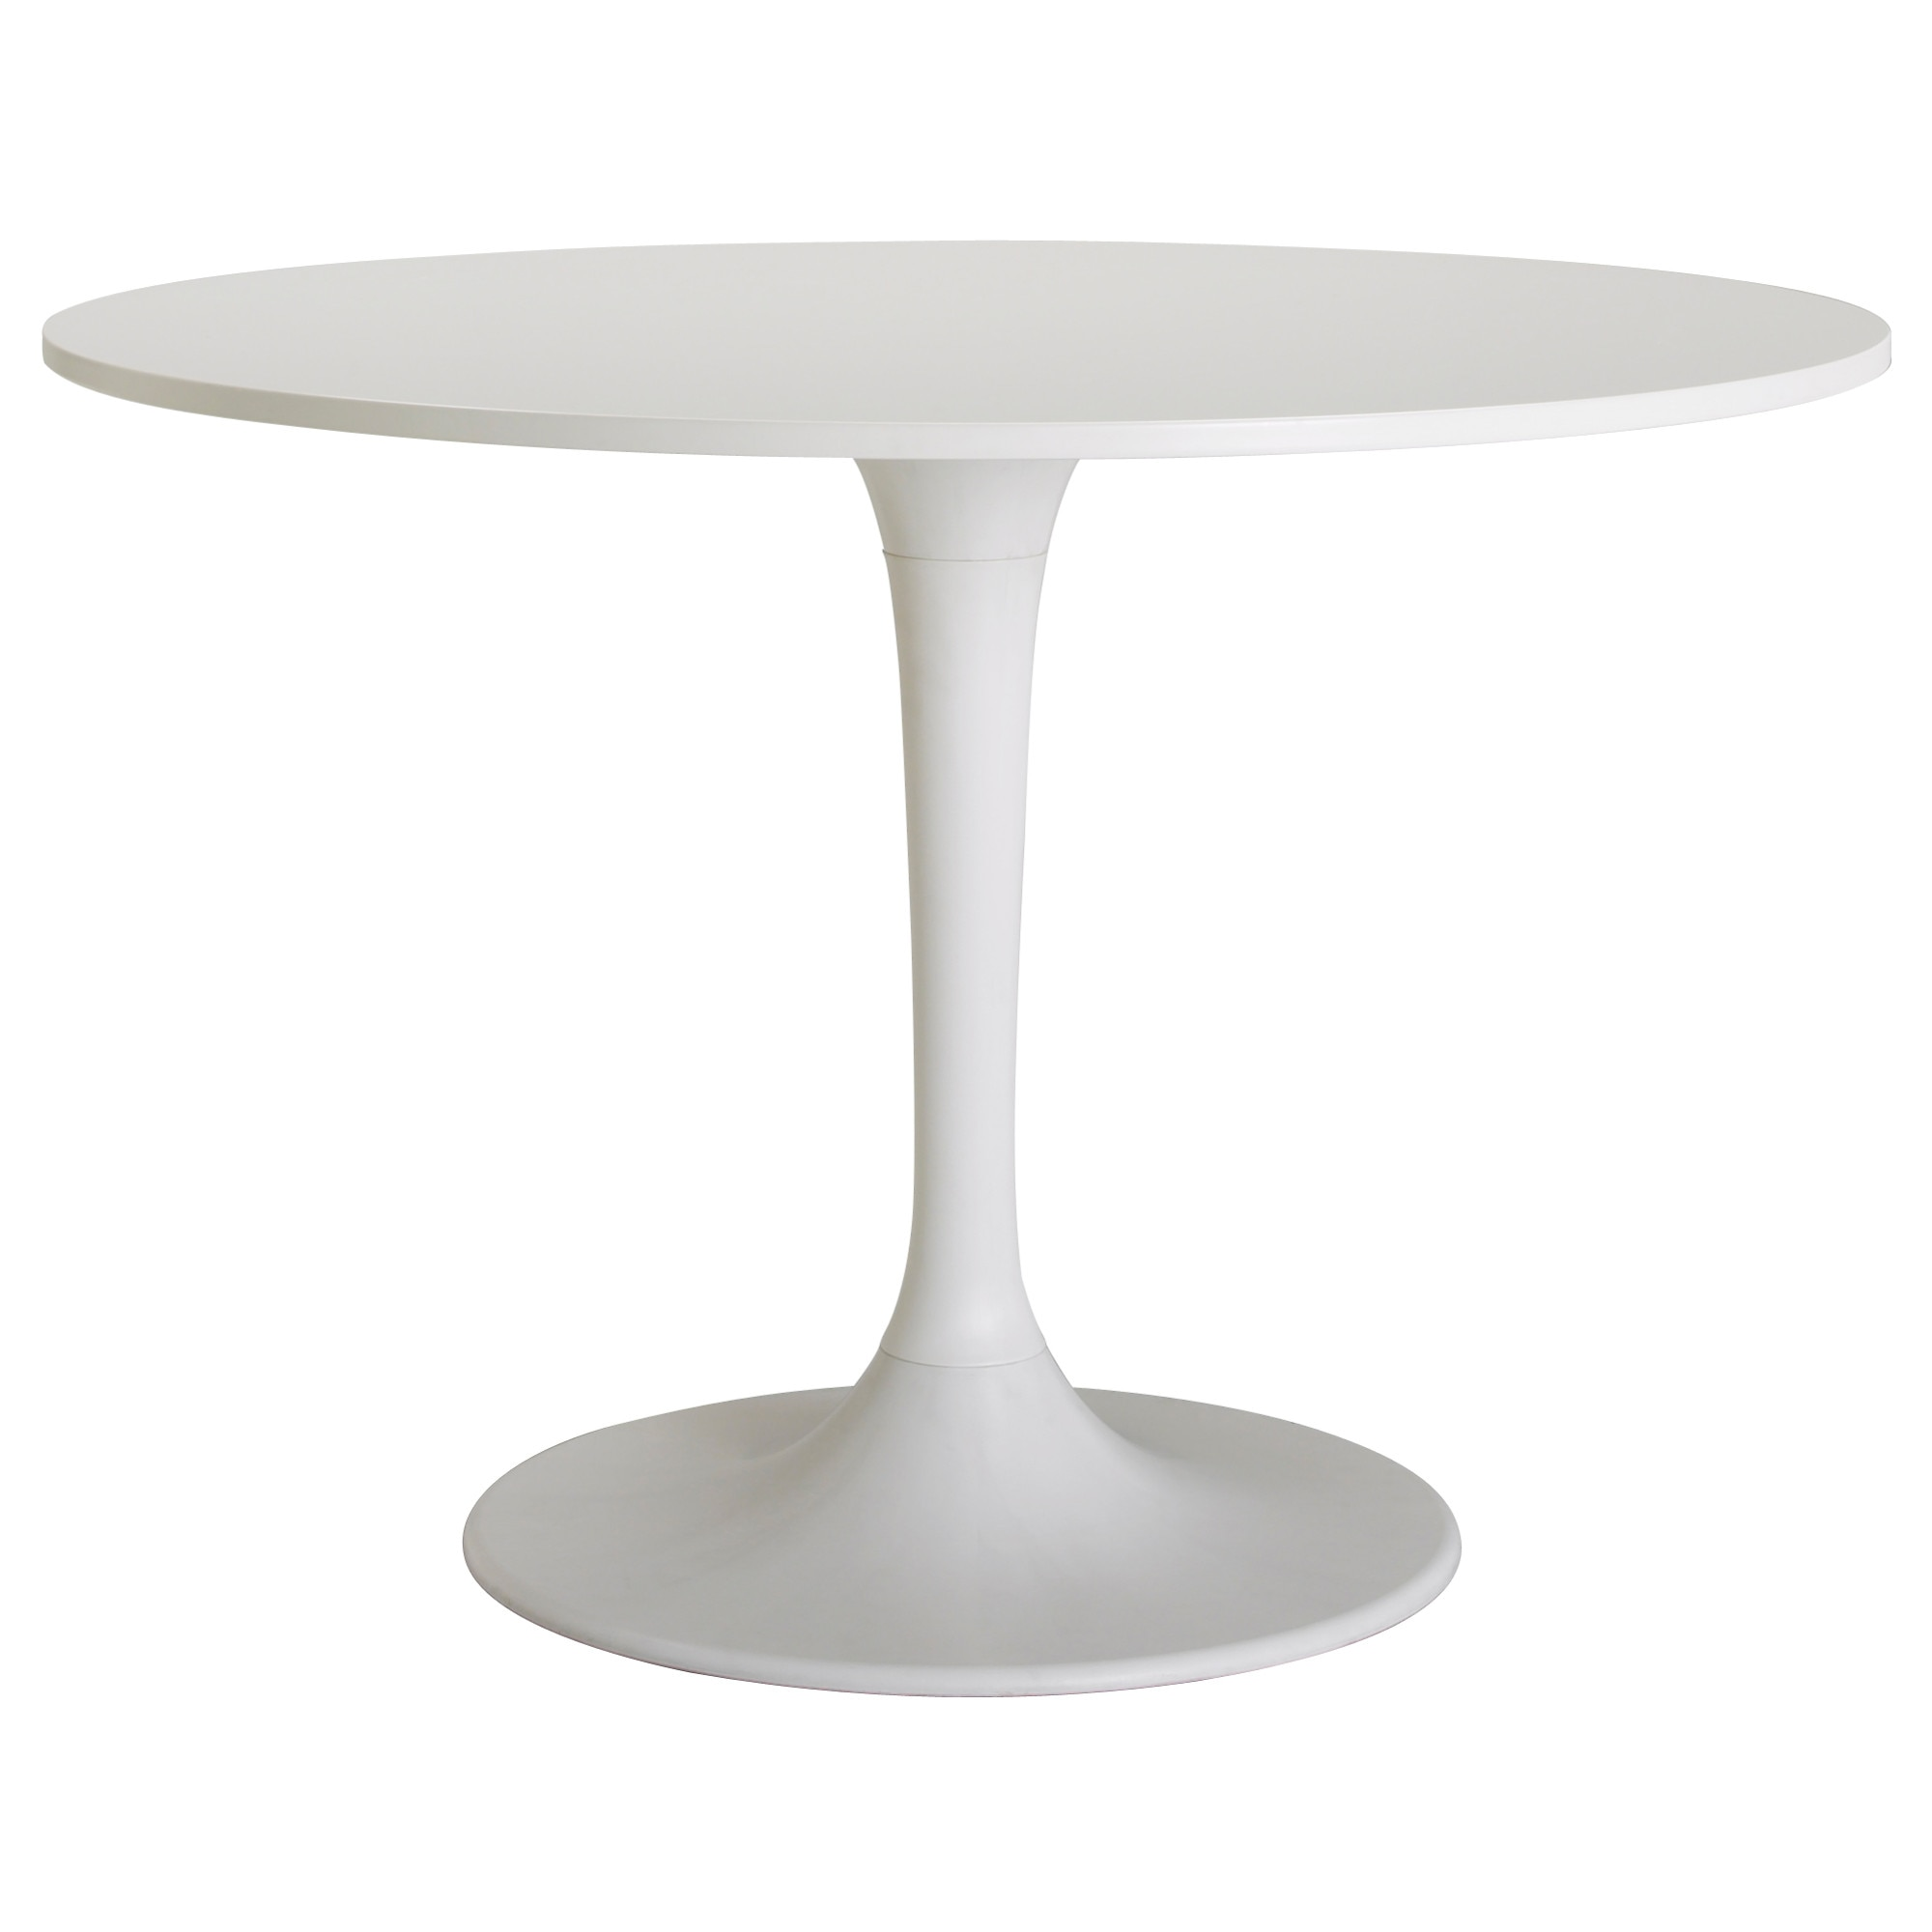 Exceptional DOCKSTA Table   IKEA